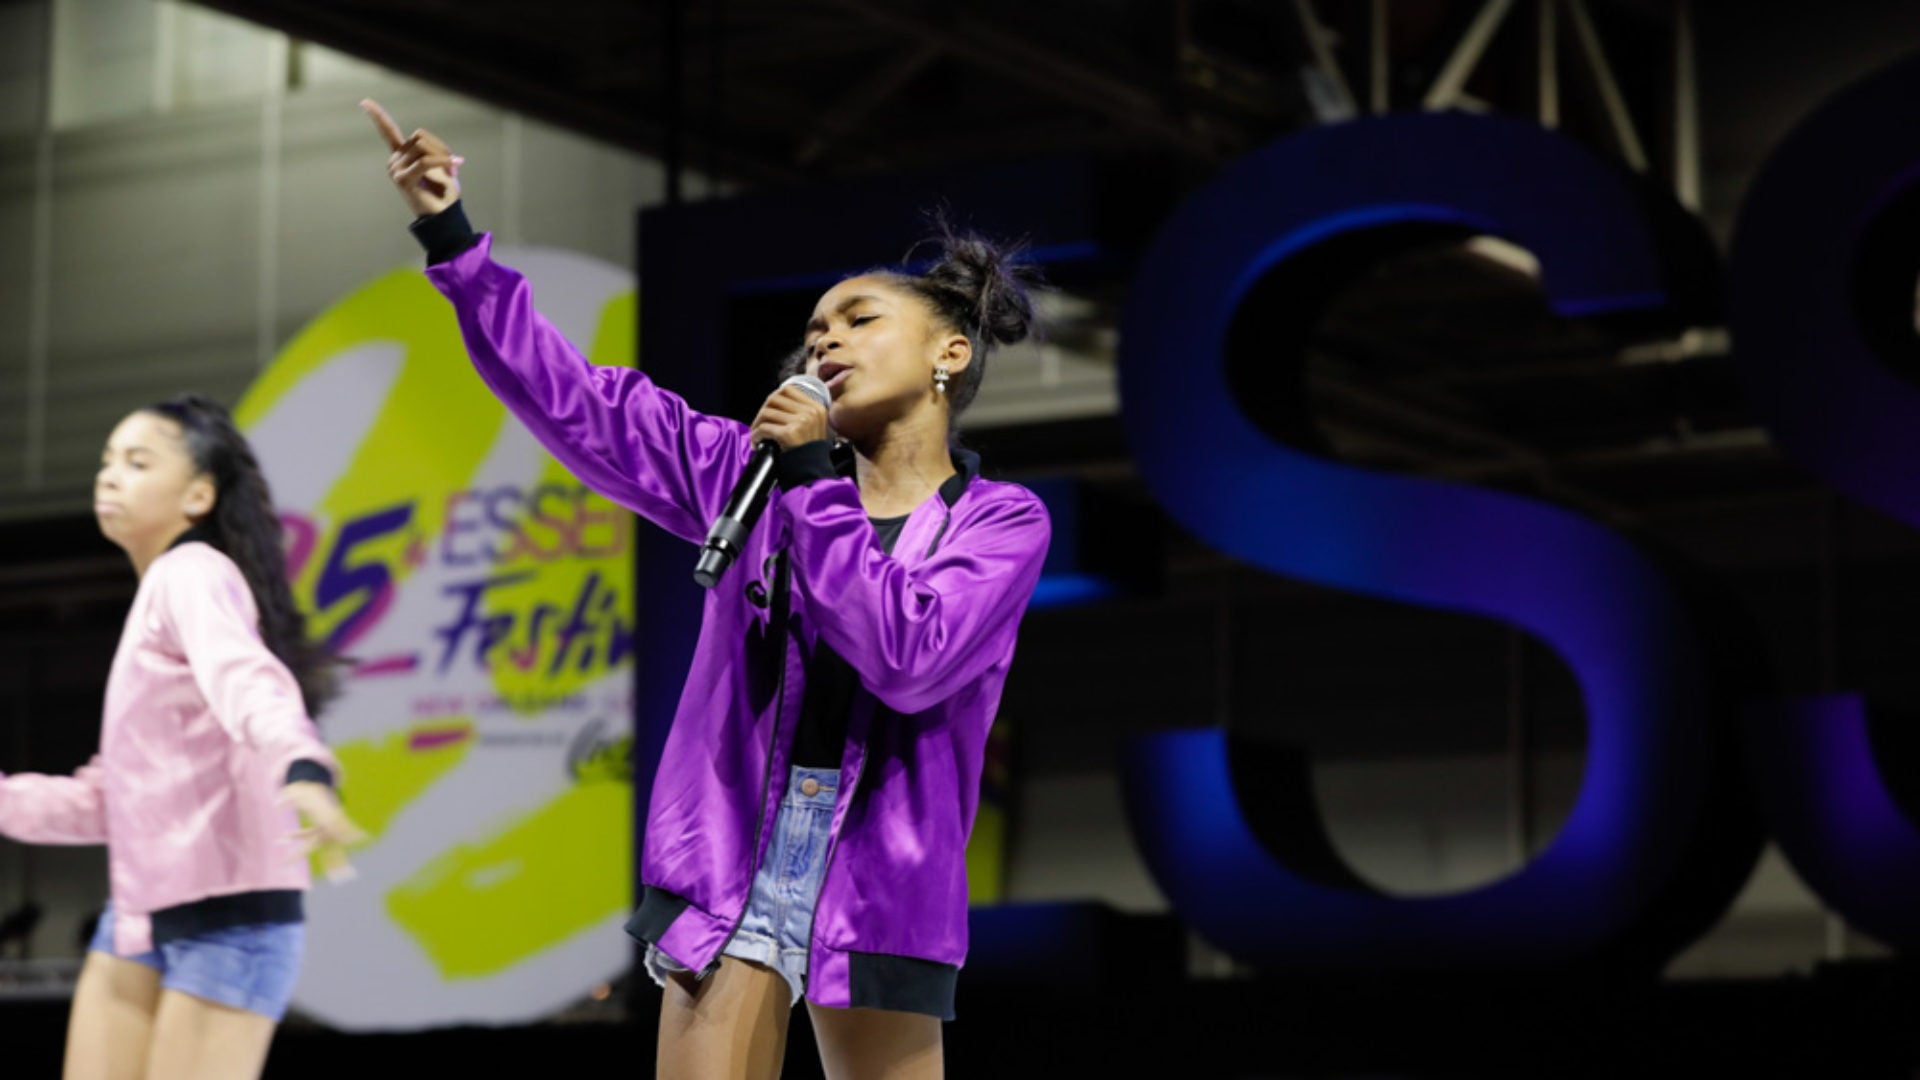 That Girl Lay Lay Performs At Essence Festival Center Stage